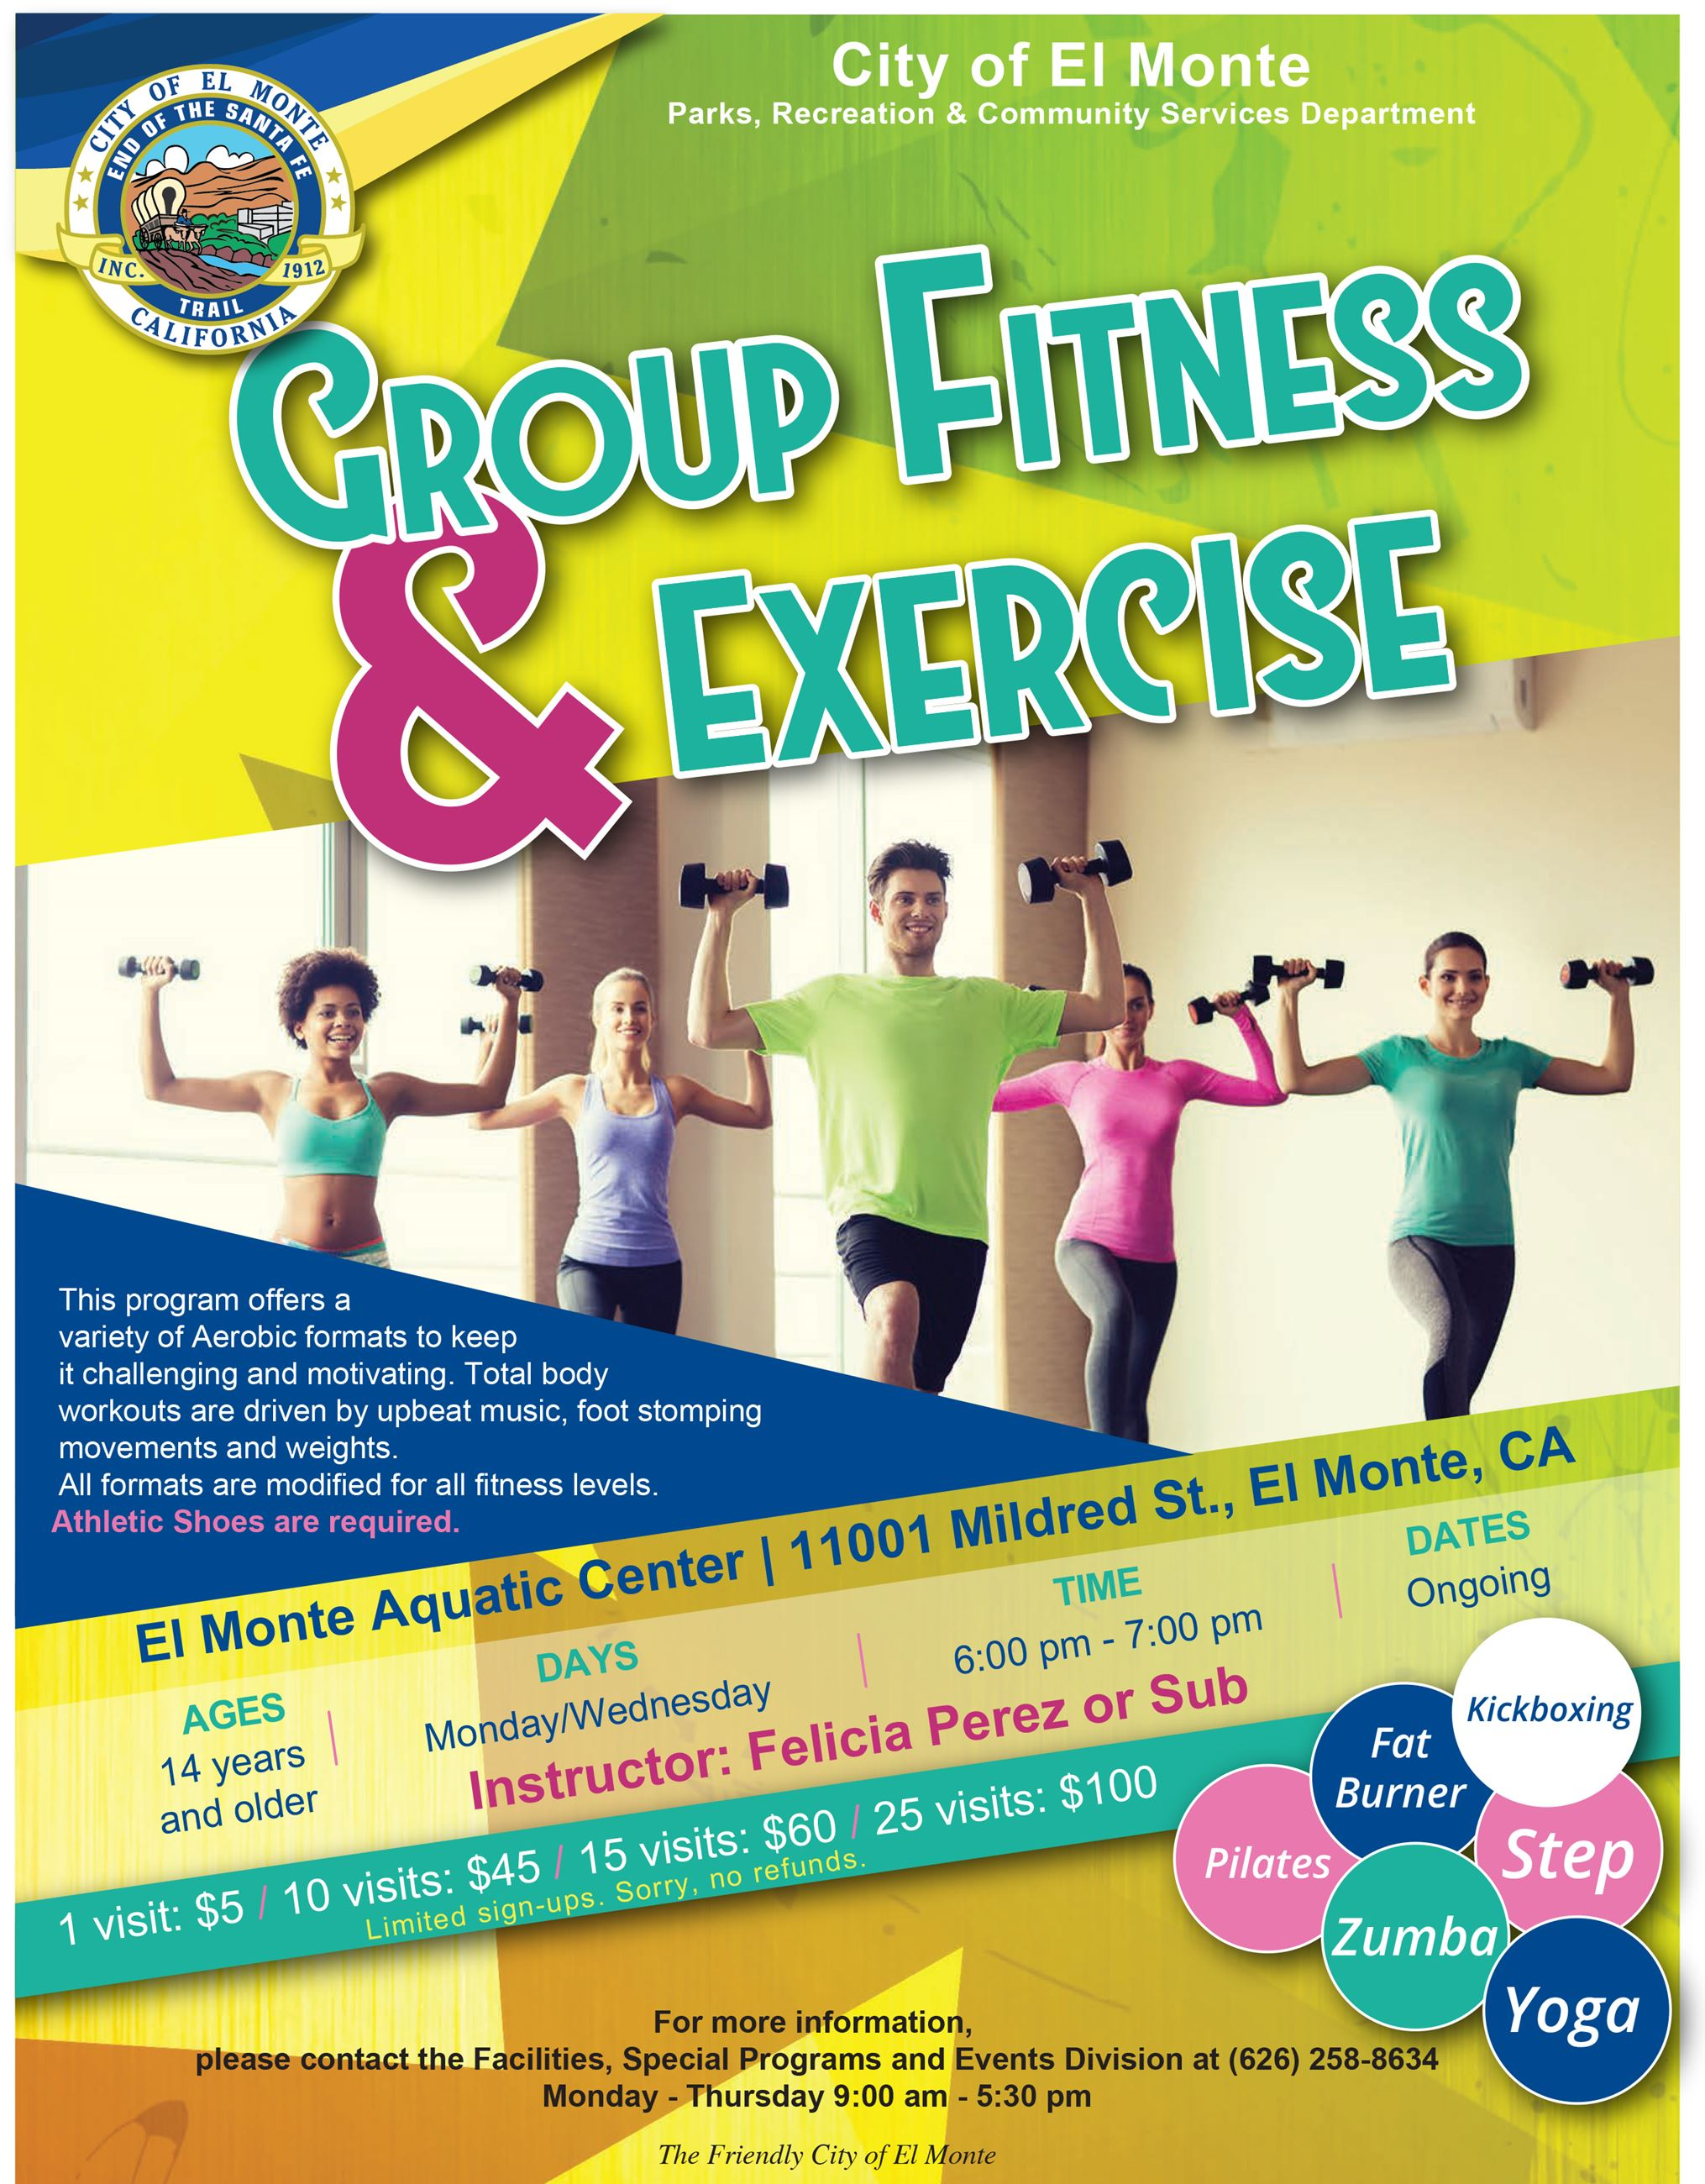 2019_Group_Fitness_Exercise_Flyer_91619_c_